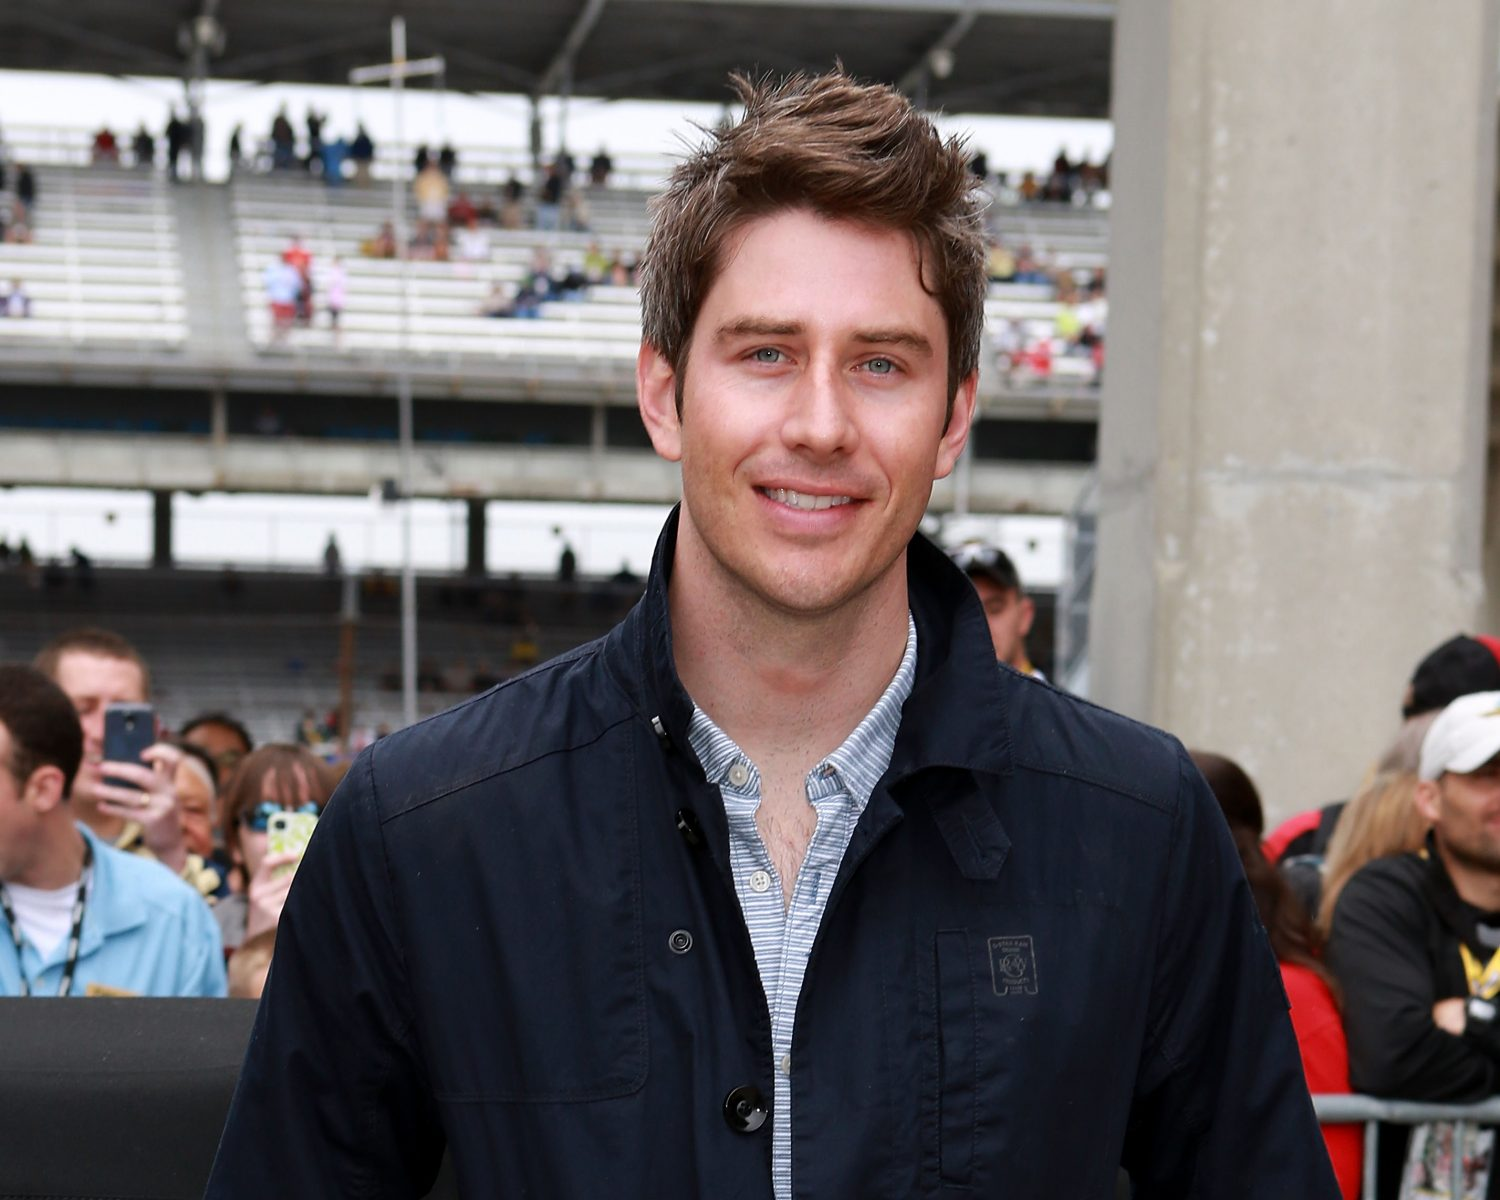 Arie Luyendyk Jr. Is The Bachelor Season 22